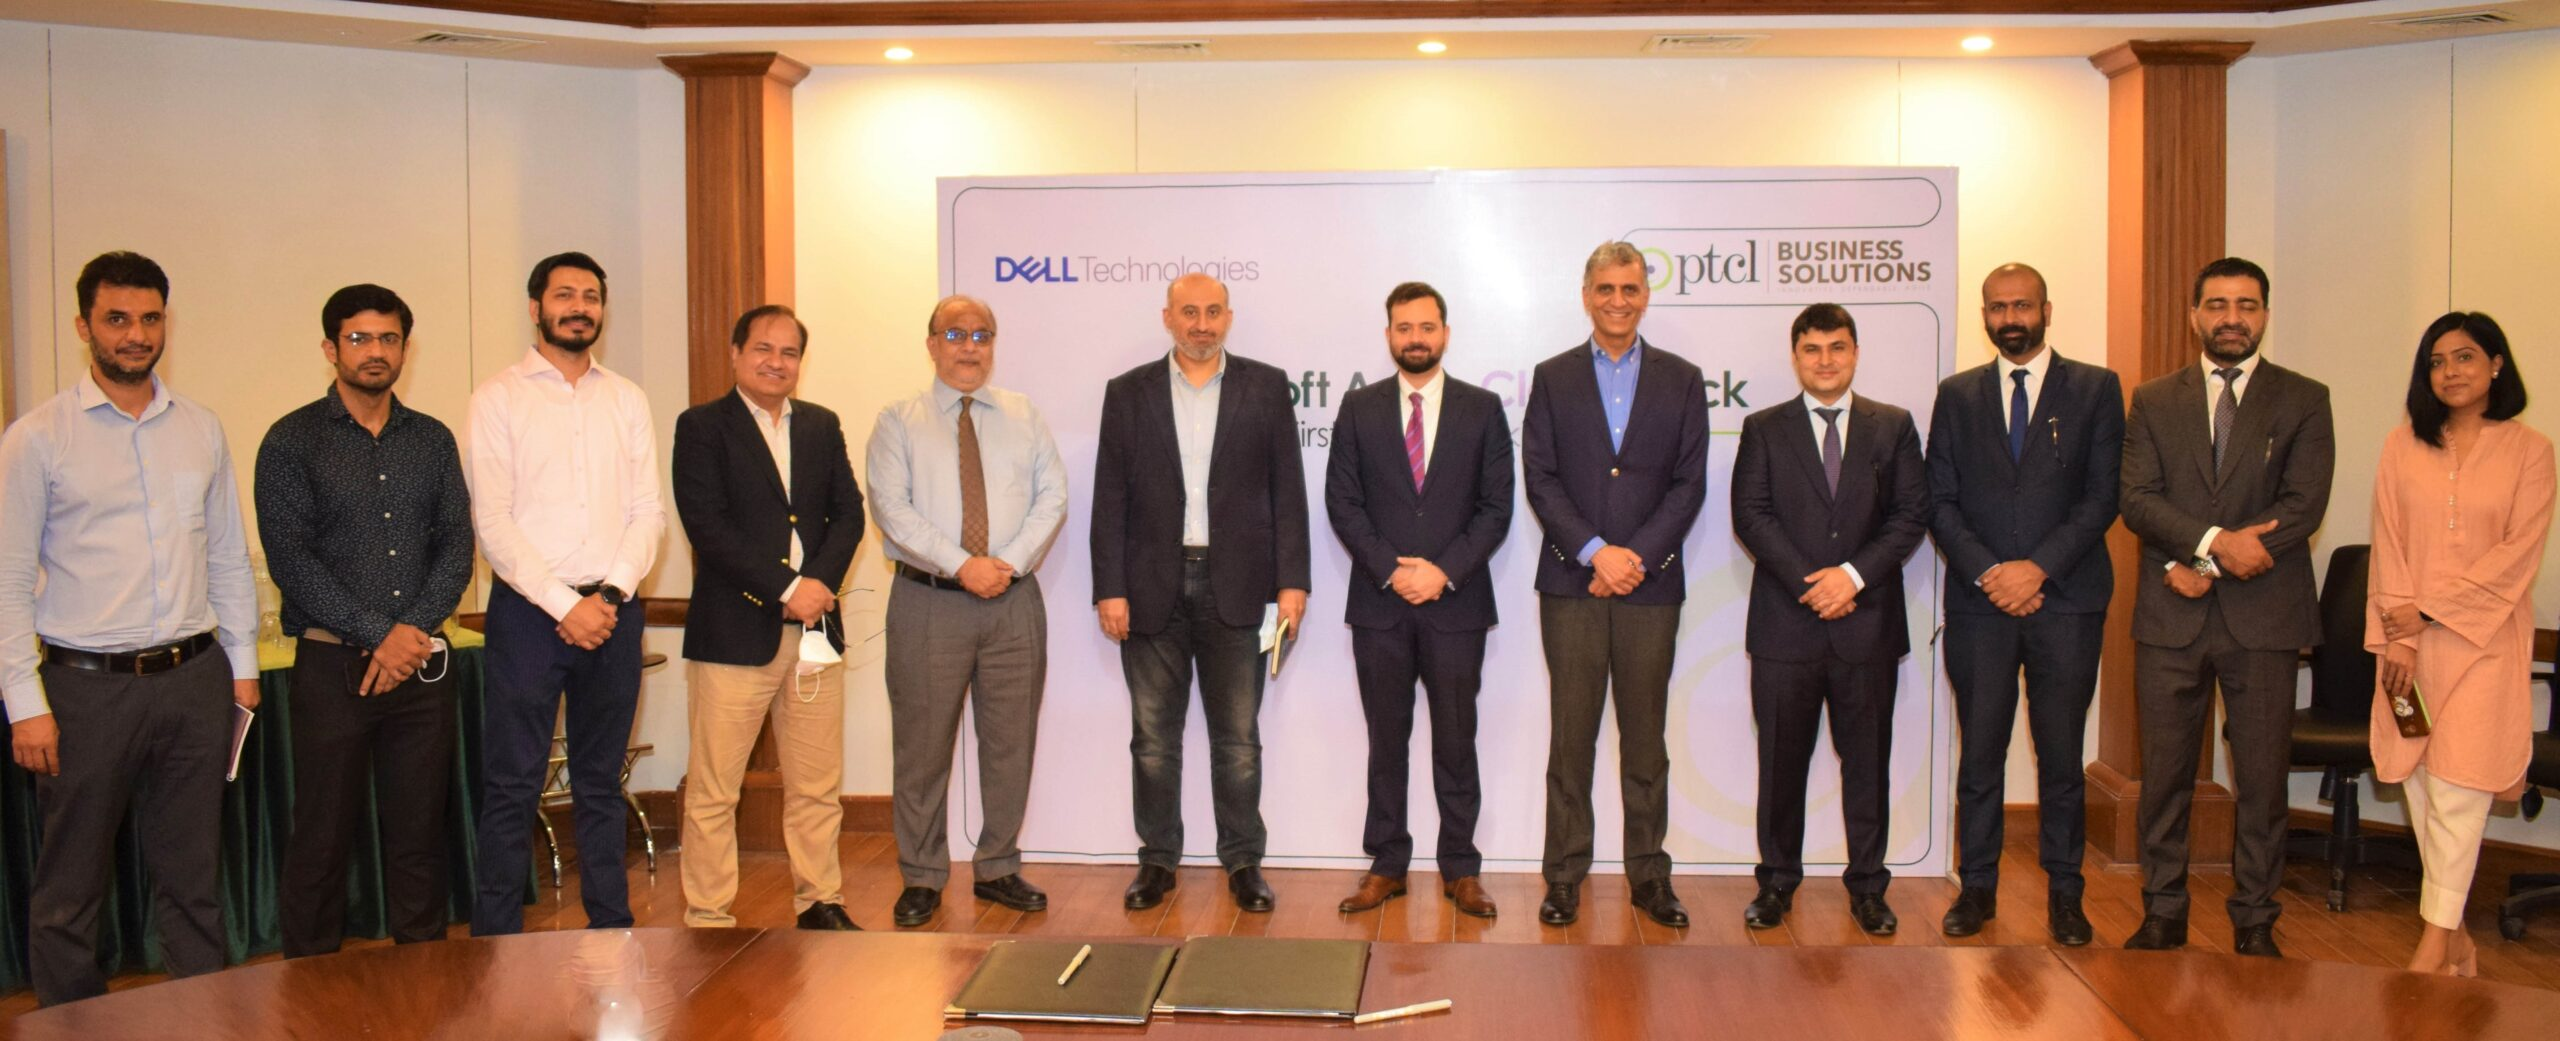 PTCL partners with Dell Technologies to bring Microsoft Azure Stack Services to Pakistan